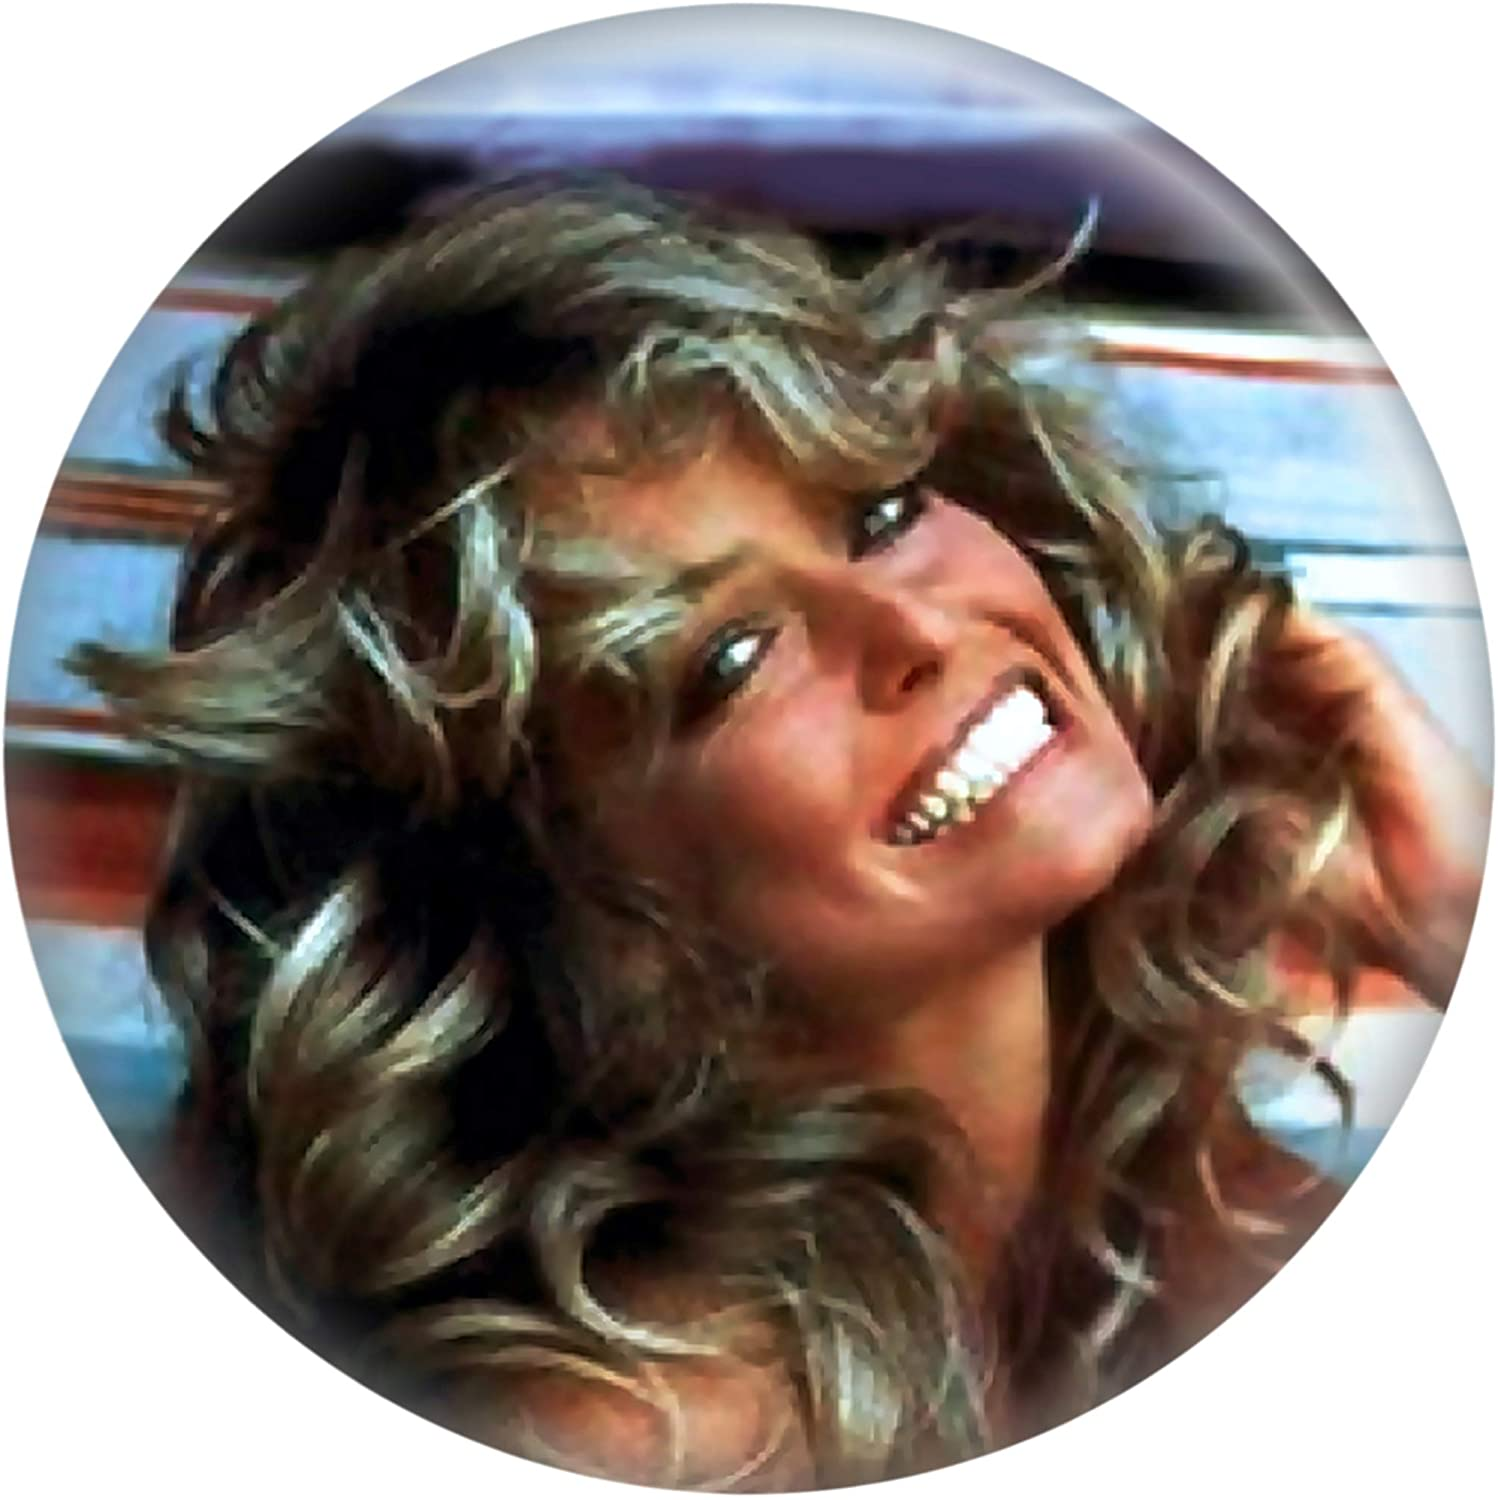 Farrah Fawcett - Head Shot on Blanket - 1 1/4